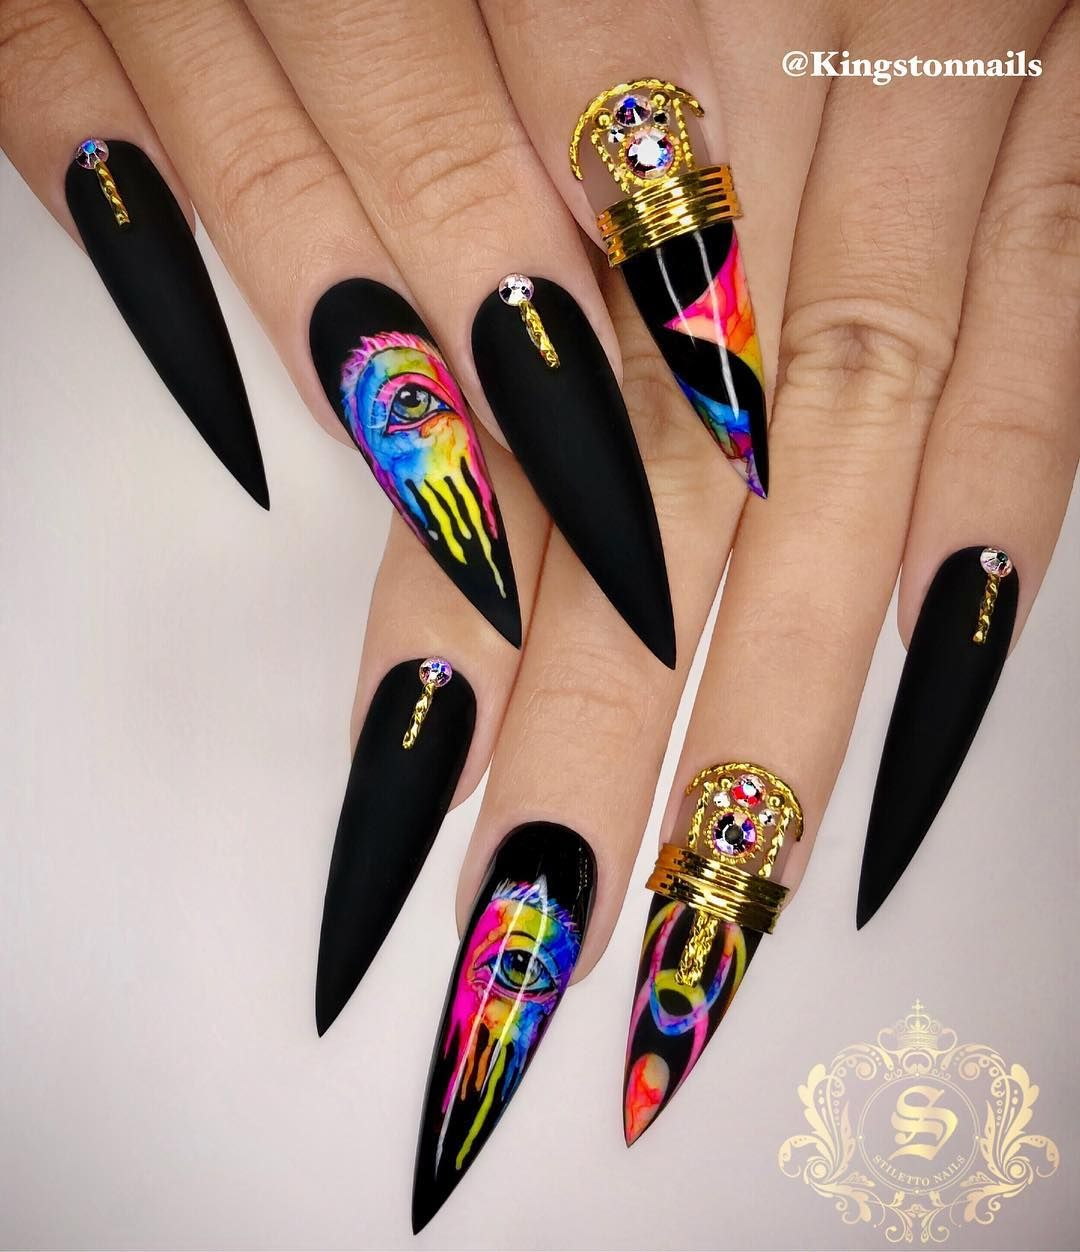 This Rainbow Eyeball Will Be On Action Toronto Class May 12 14 Only Few Seats Left What R U Waiting For Sign Up Stiletto Nails Long Nail Art Nail Designs